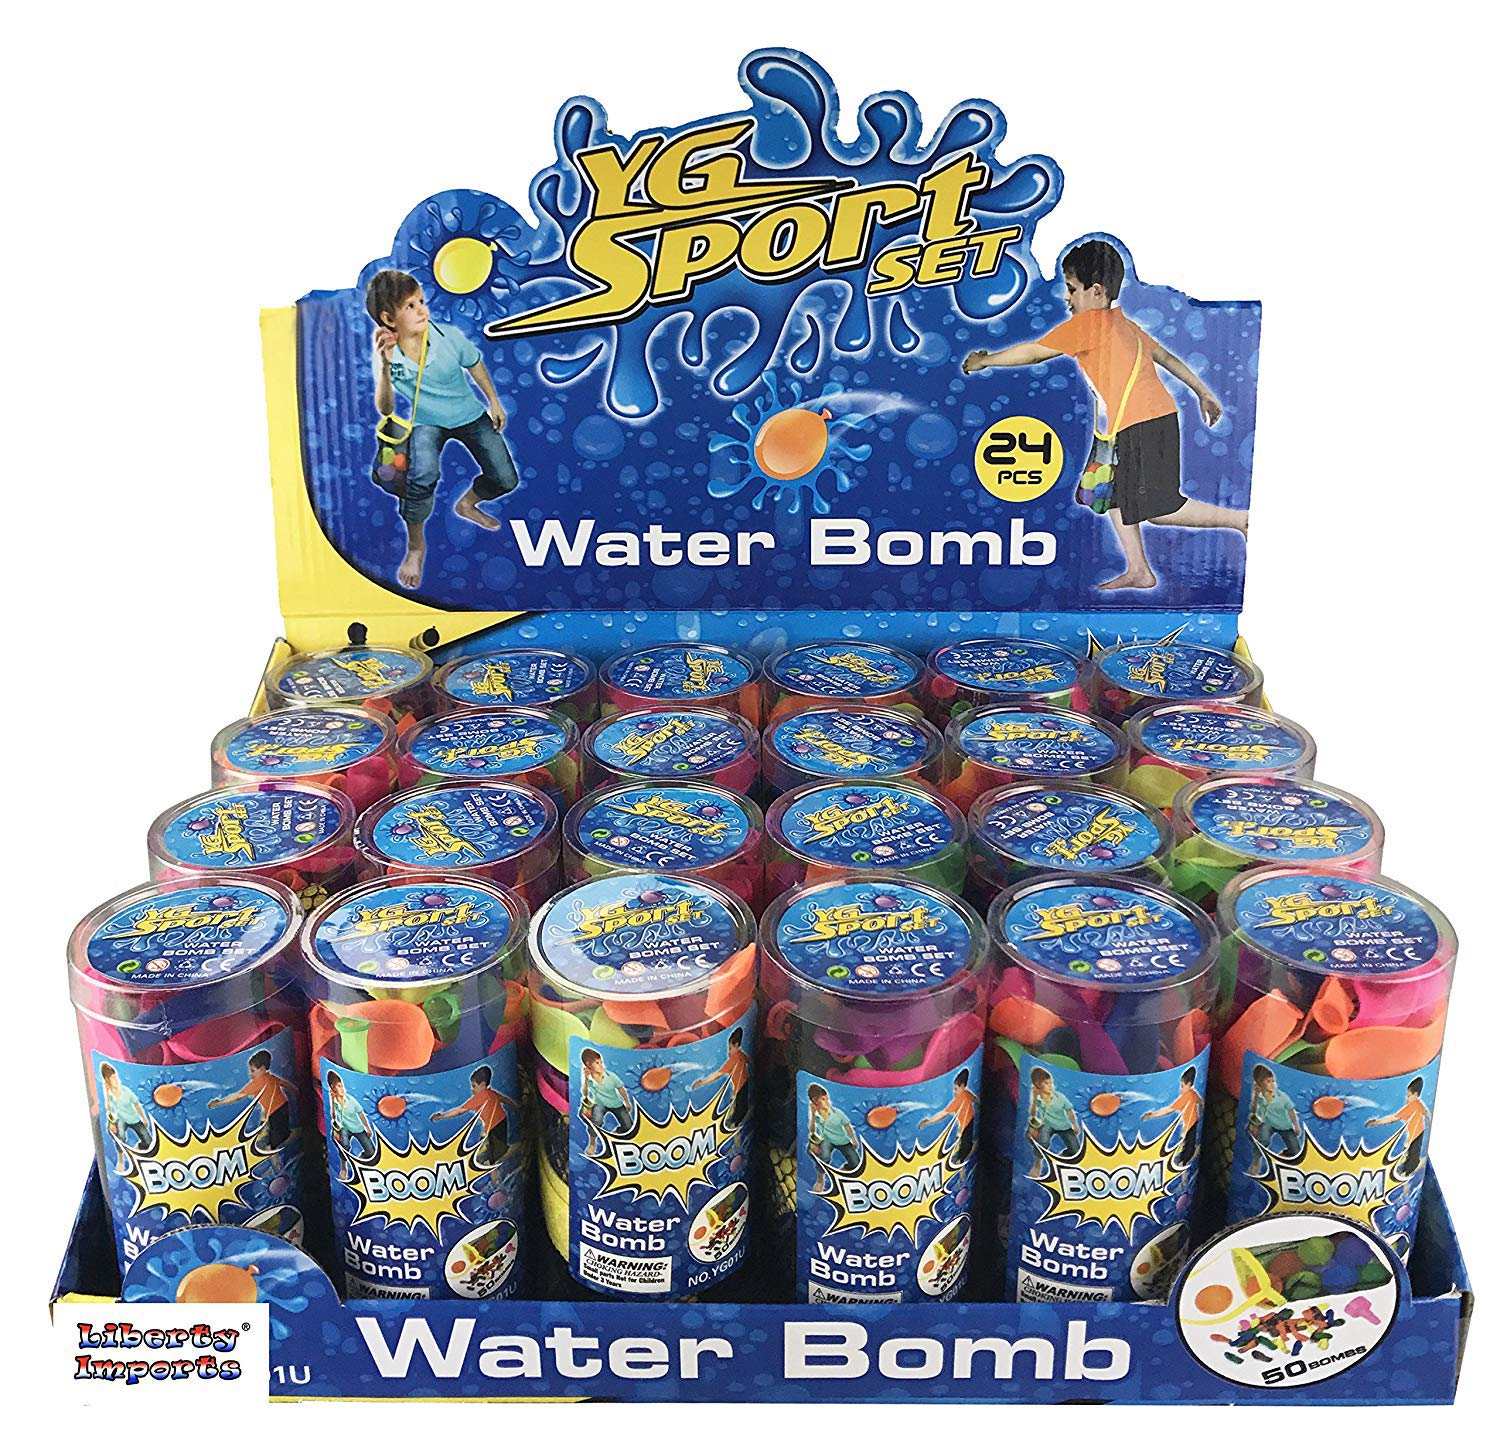 24 Pack - Refill Kits of Latex Water Balloons Bomb - Summer Water Balloon Fight, Party Favors, Sports Fun for Kids and Adults - Multicolored with Nozzle and Carry Bag (1200 Count) by Liberty Imports (Image #4)